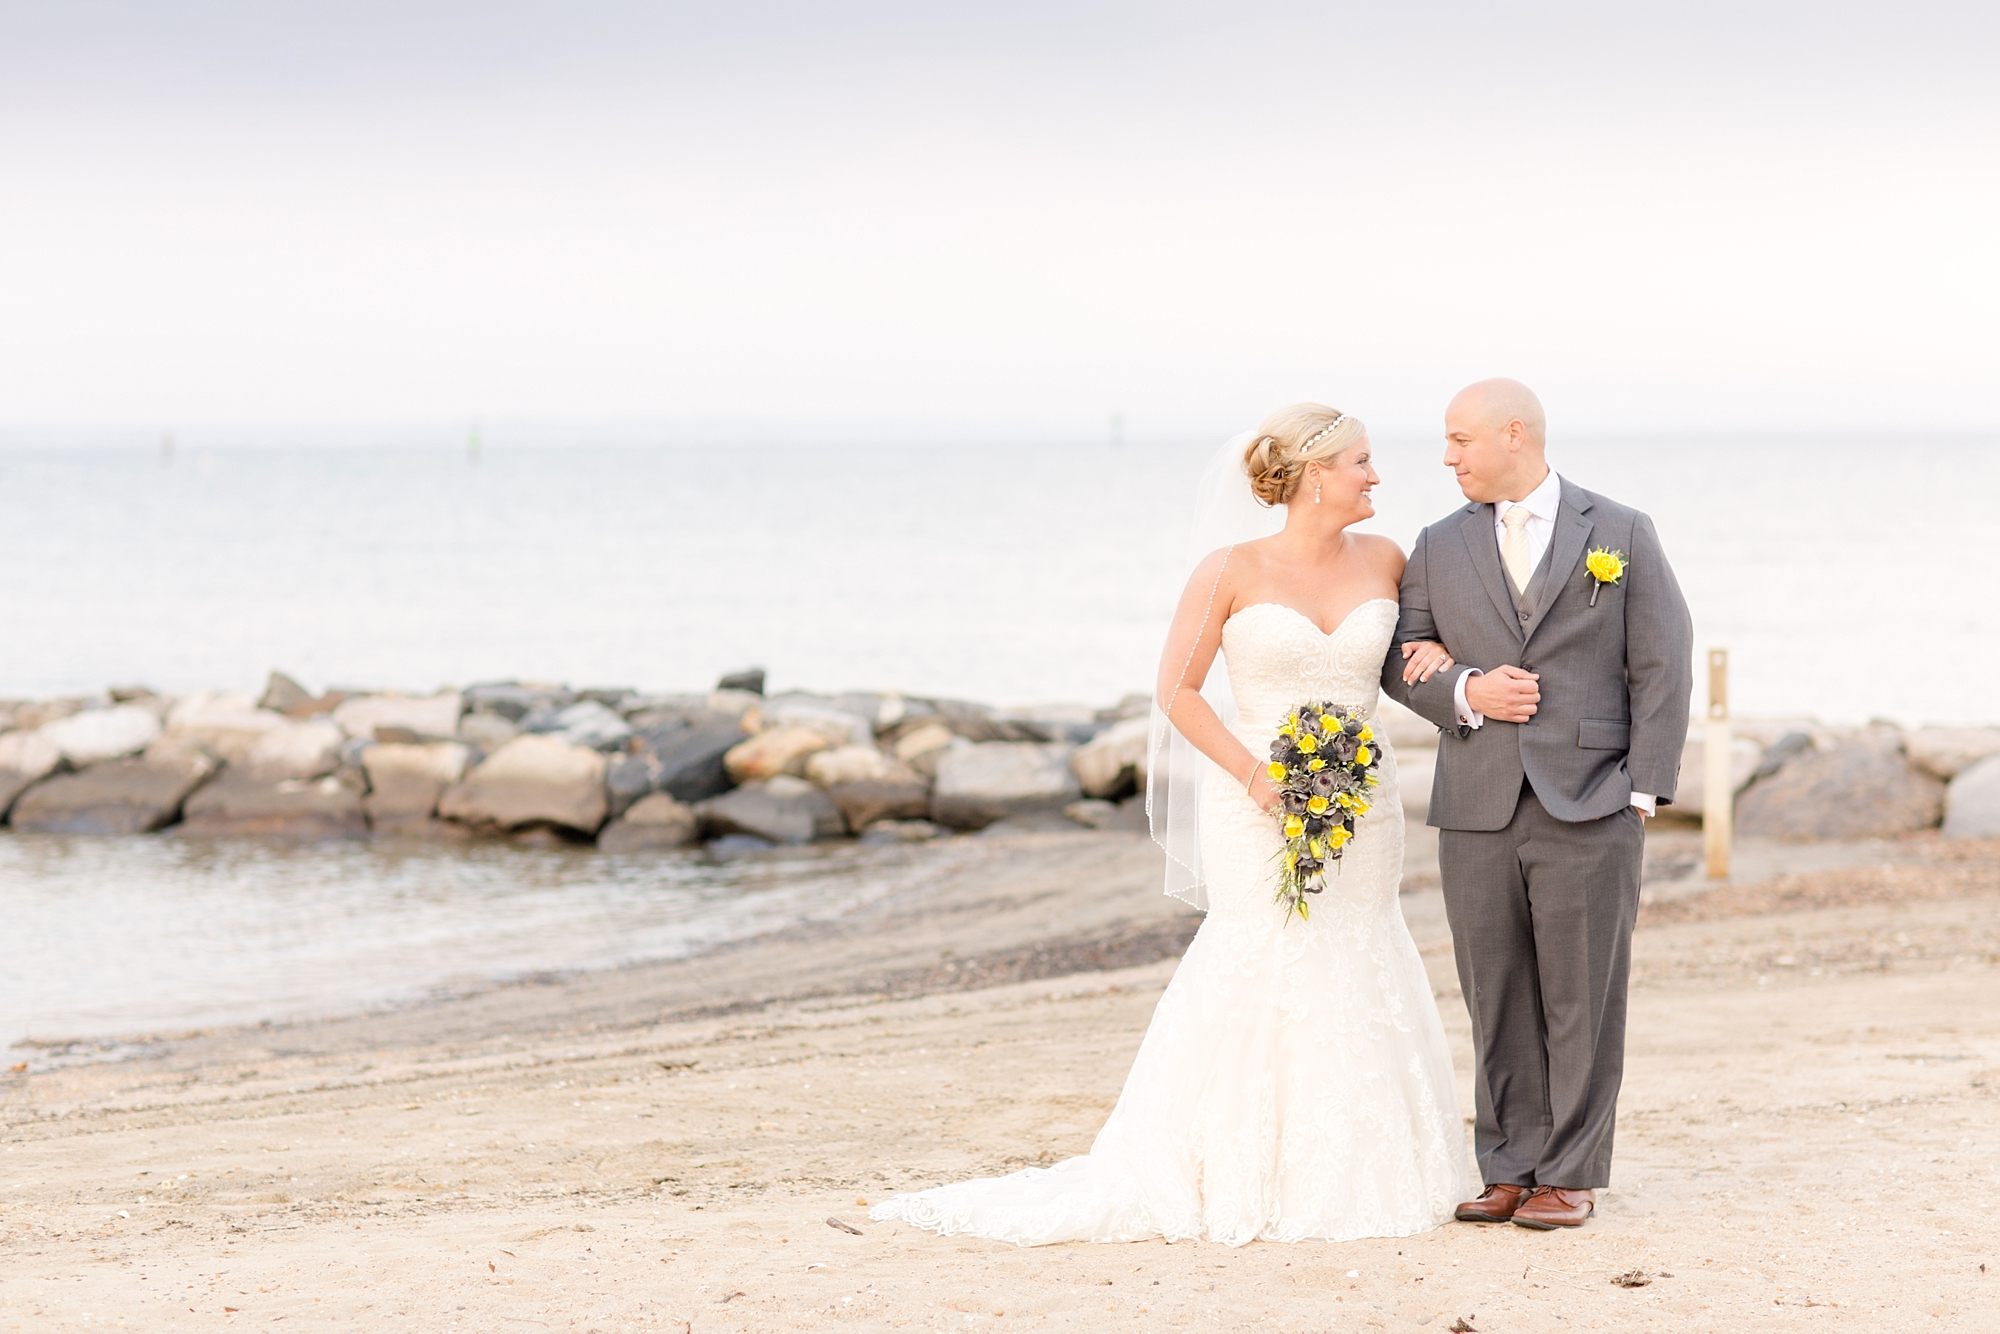 Mankiewicz 3. Bride & Groom Portraits-842_anna grace photography annapolis maryland wedding photographer herrington on the bay wedding photo.jpg